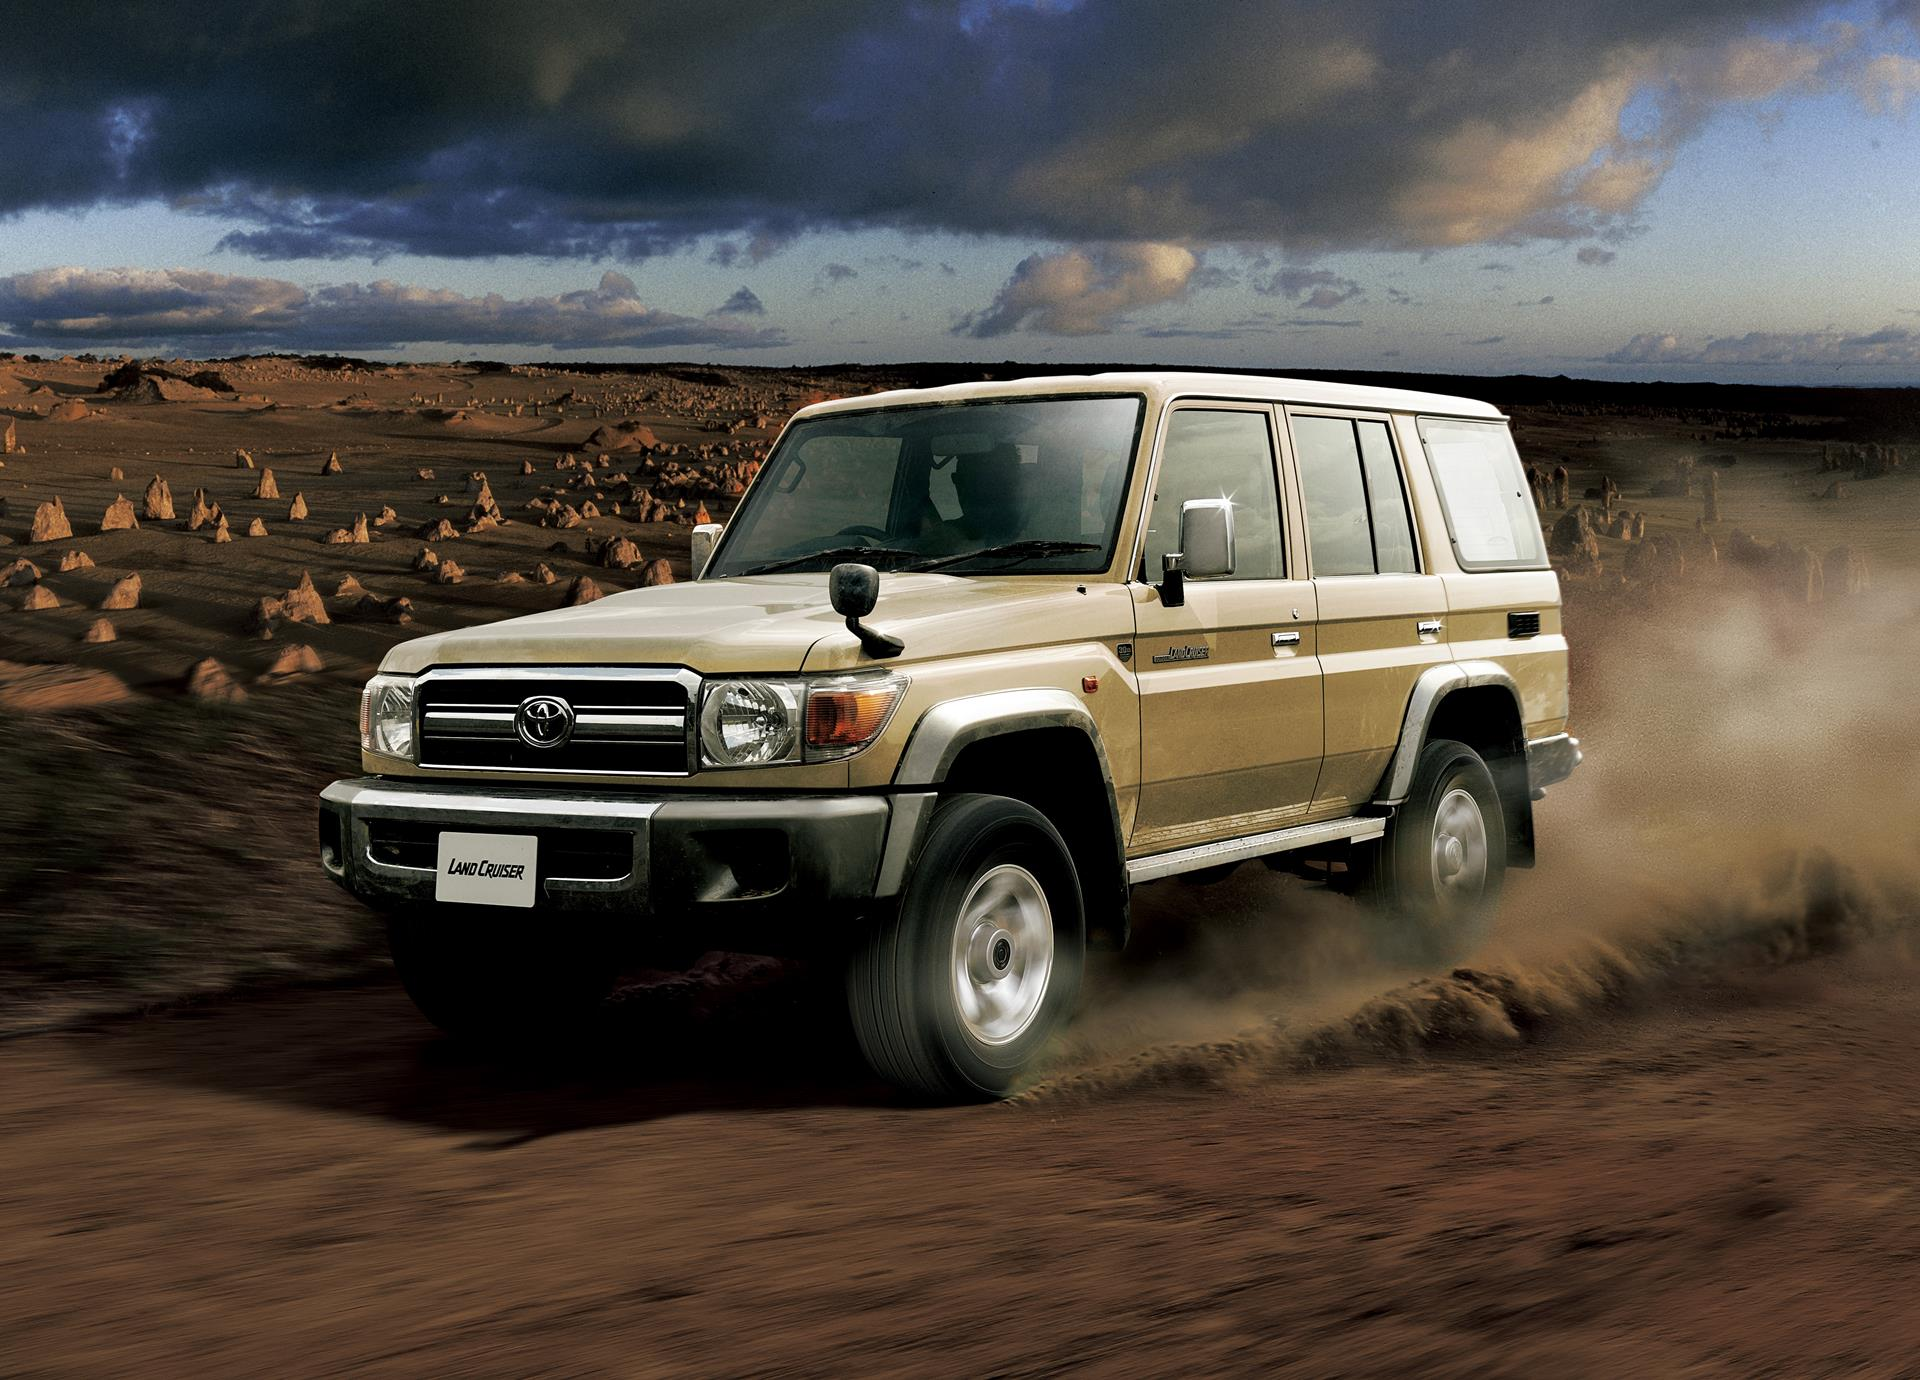 Land Cruiser J70 >> 30 Years Of Toyota Land Cruiser 70 - Celebrating With Limited Edition Models - autoevolution